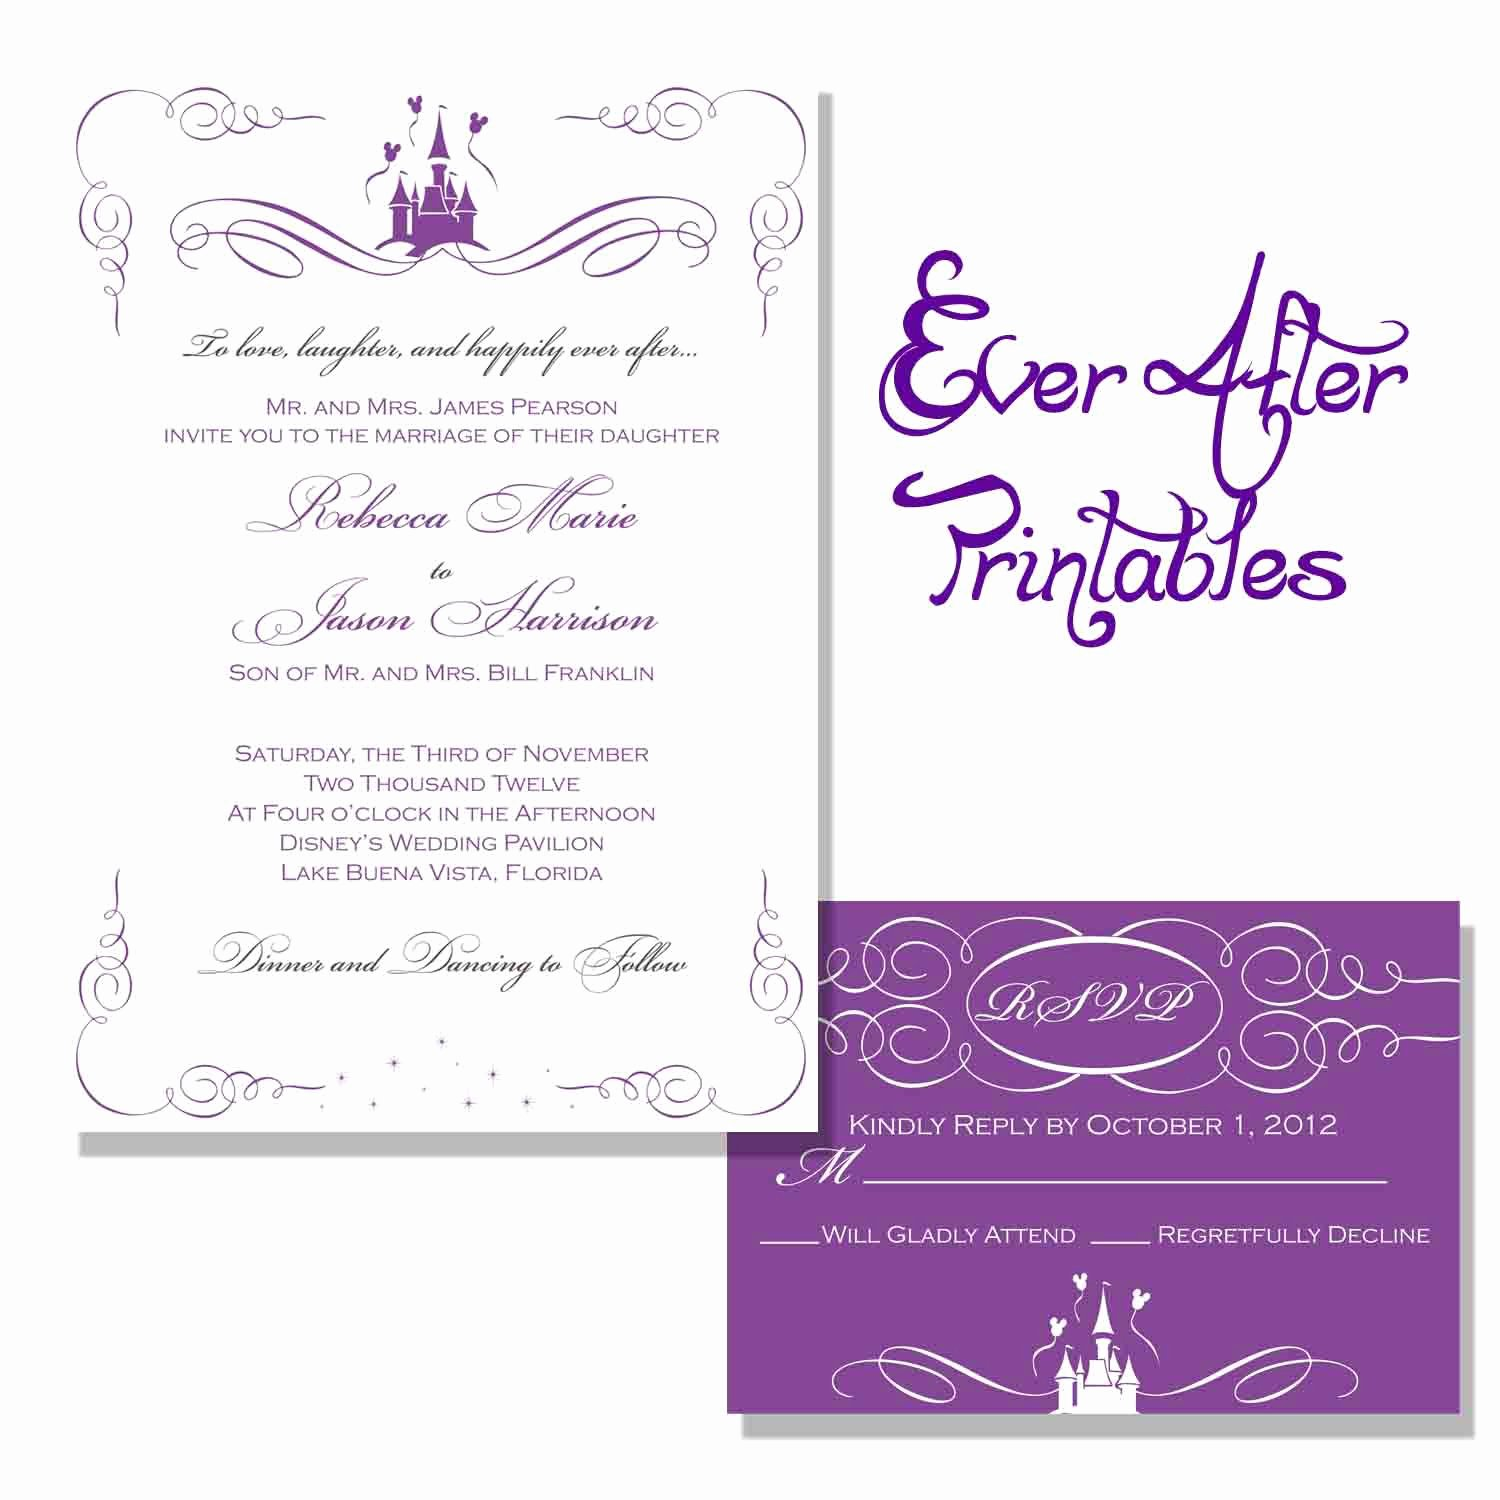 Word Template for Invitations Fresh Engagement Party Invitation Word Templates Free Card